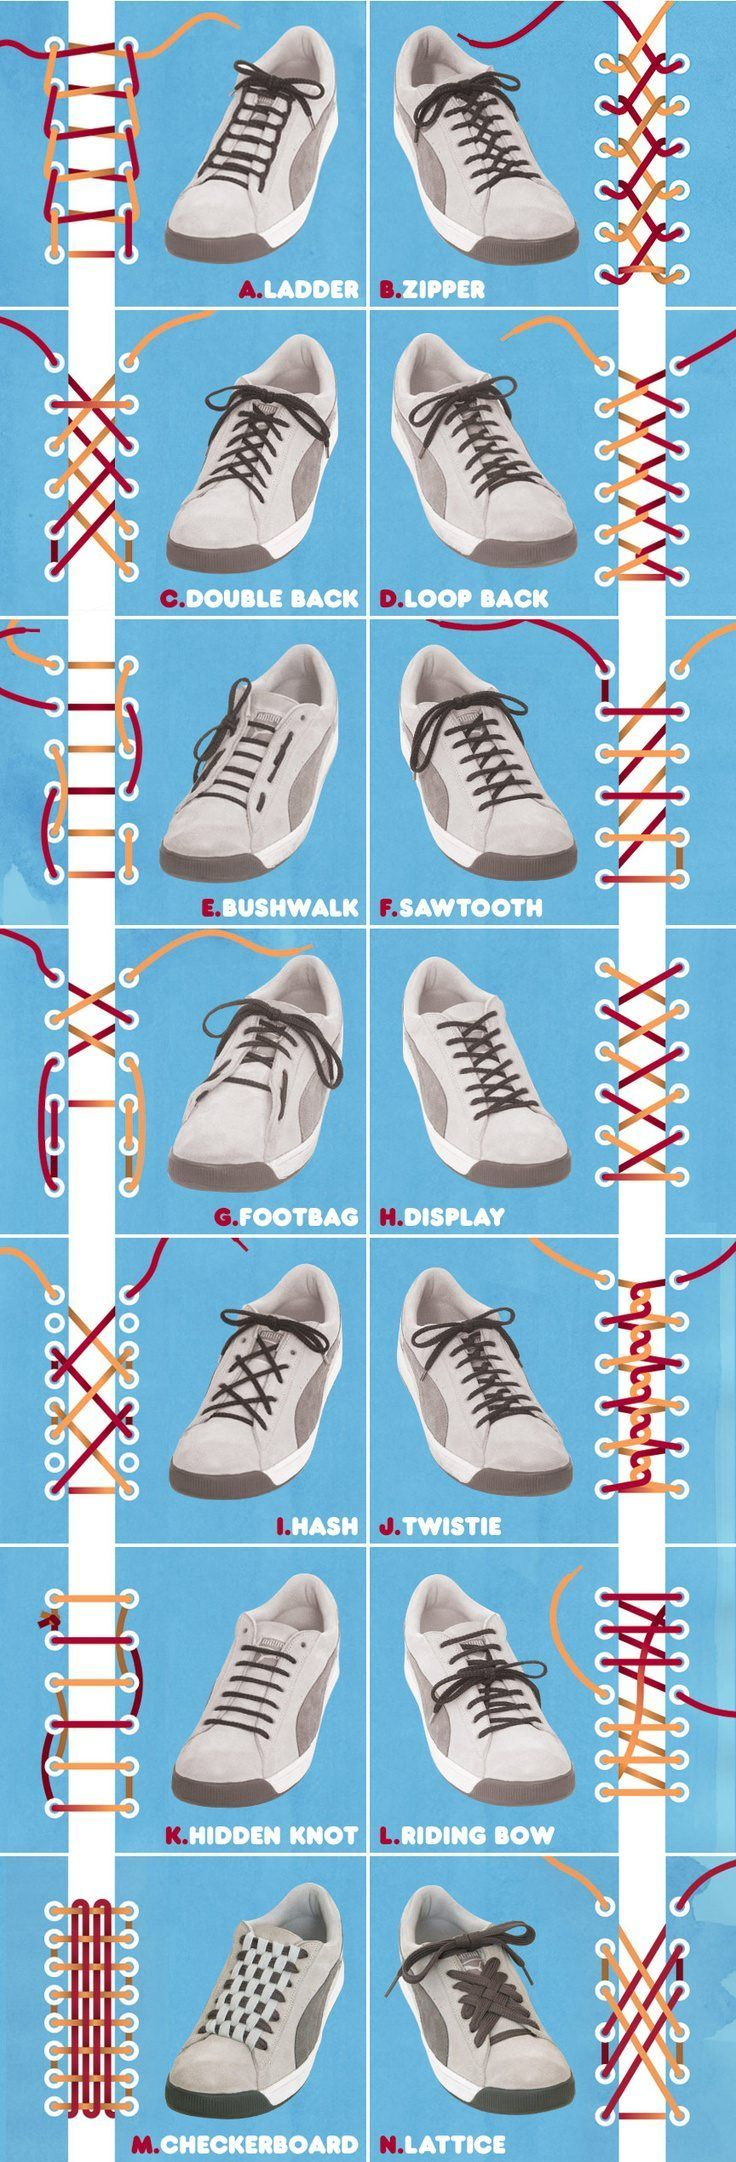 This graph helps you to know different ways to tie a shoe laces.